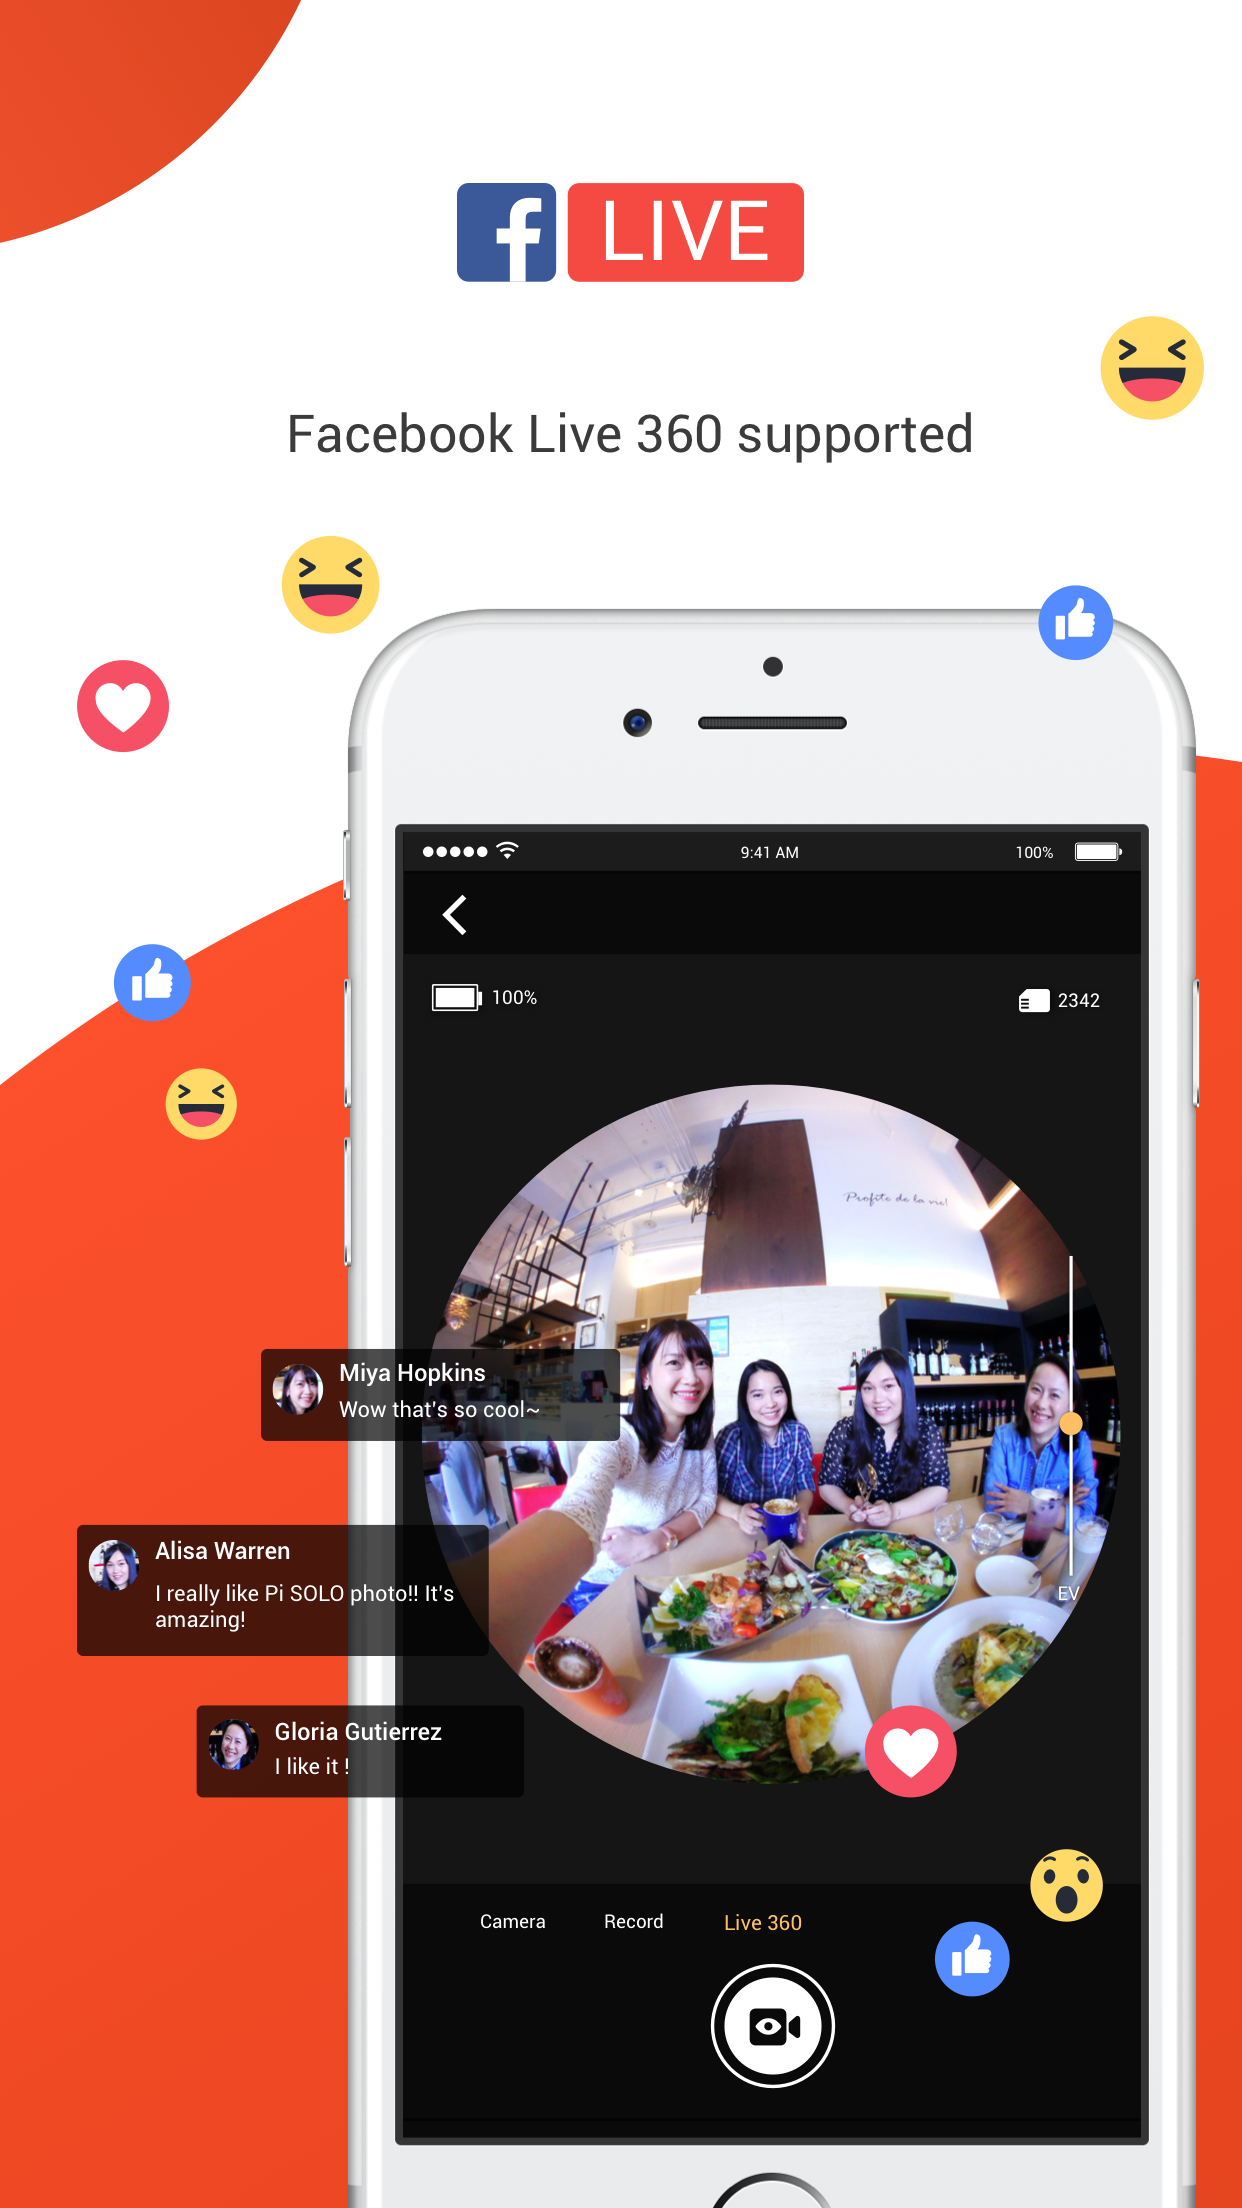 Facebook Live 360 supported